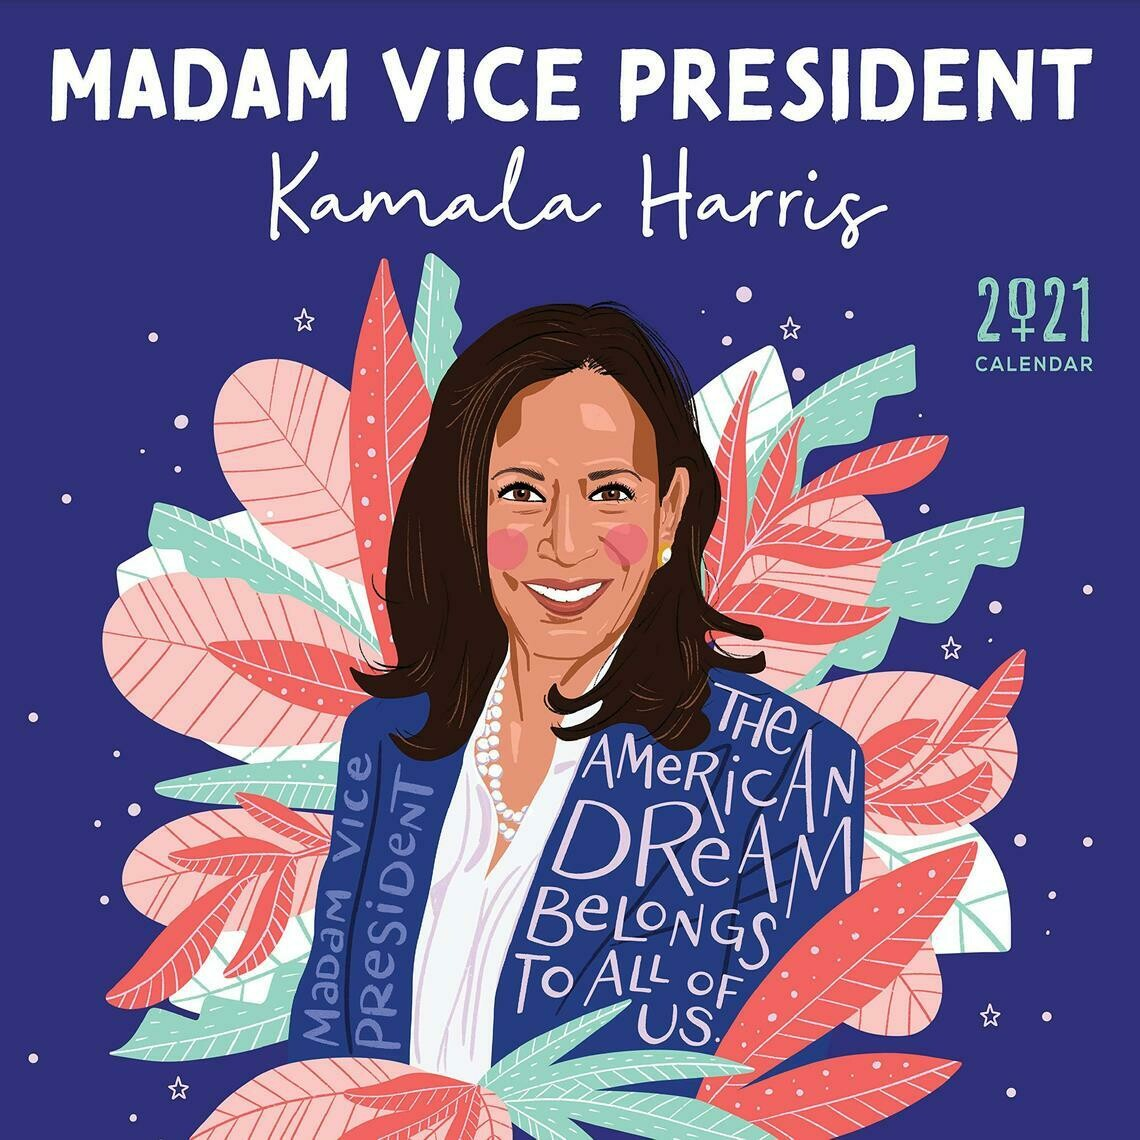 The 2021 Madame Vice President Kamala Harris Wall Calendar